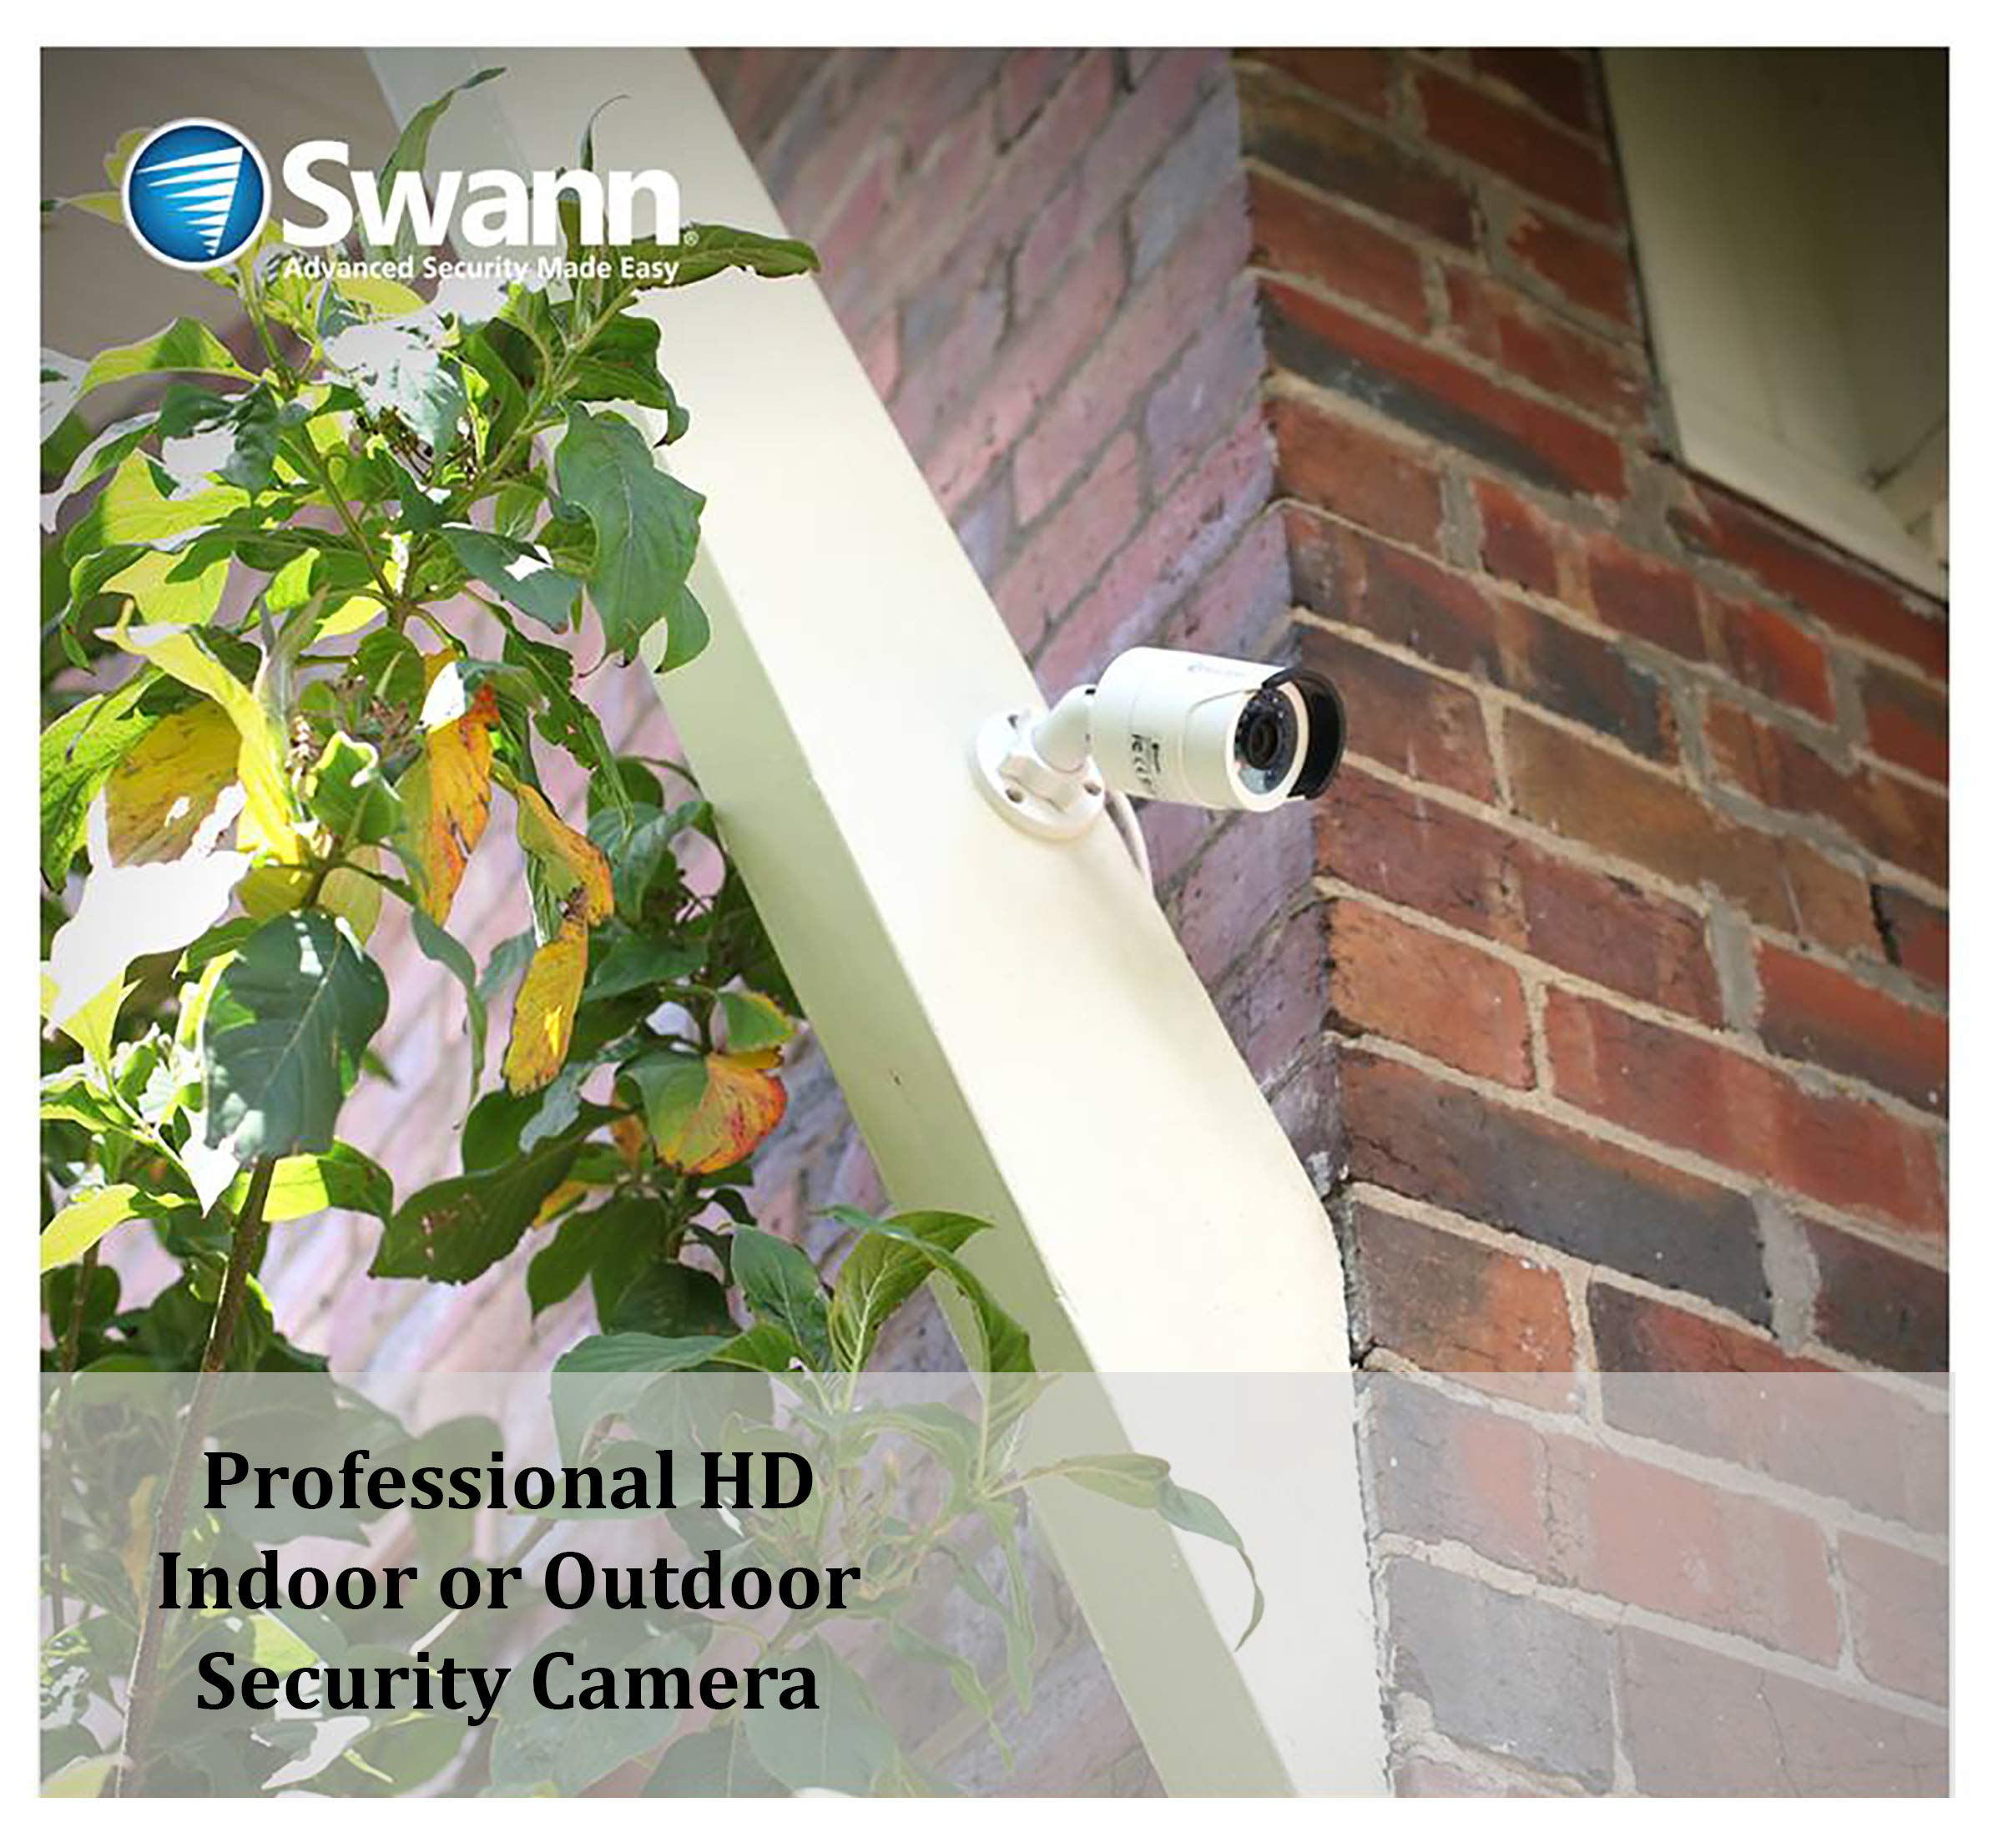 Swann PRO-T852 1080p Multi-Purpose Day/Night Security Camera with Night Vision up to 100 ft / 3m - 4-Pack